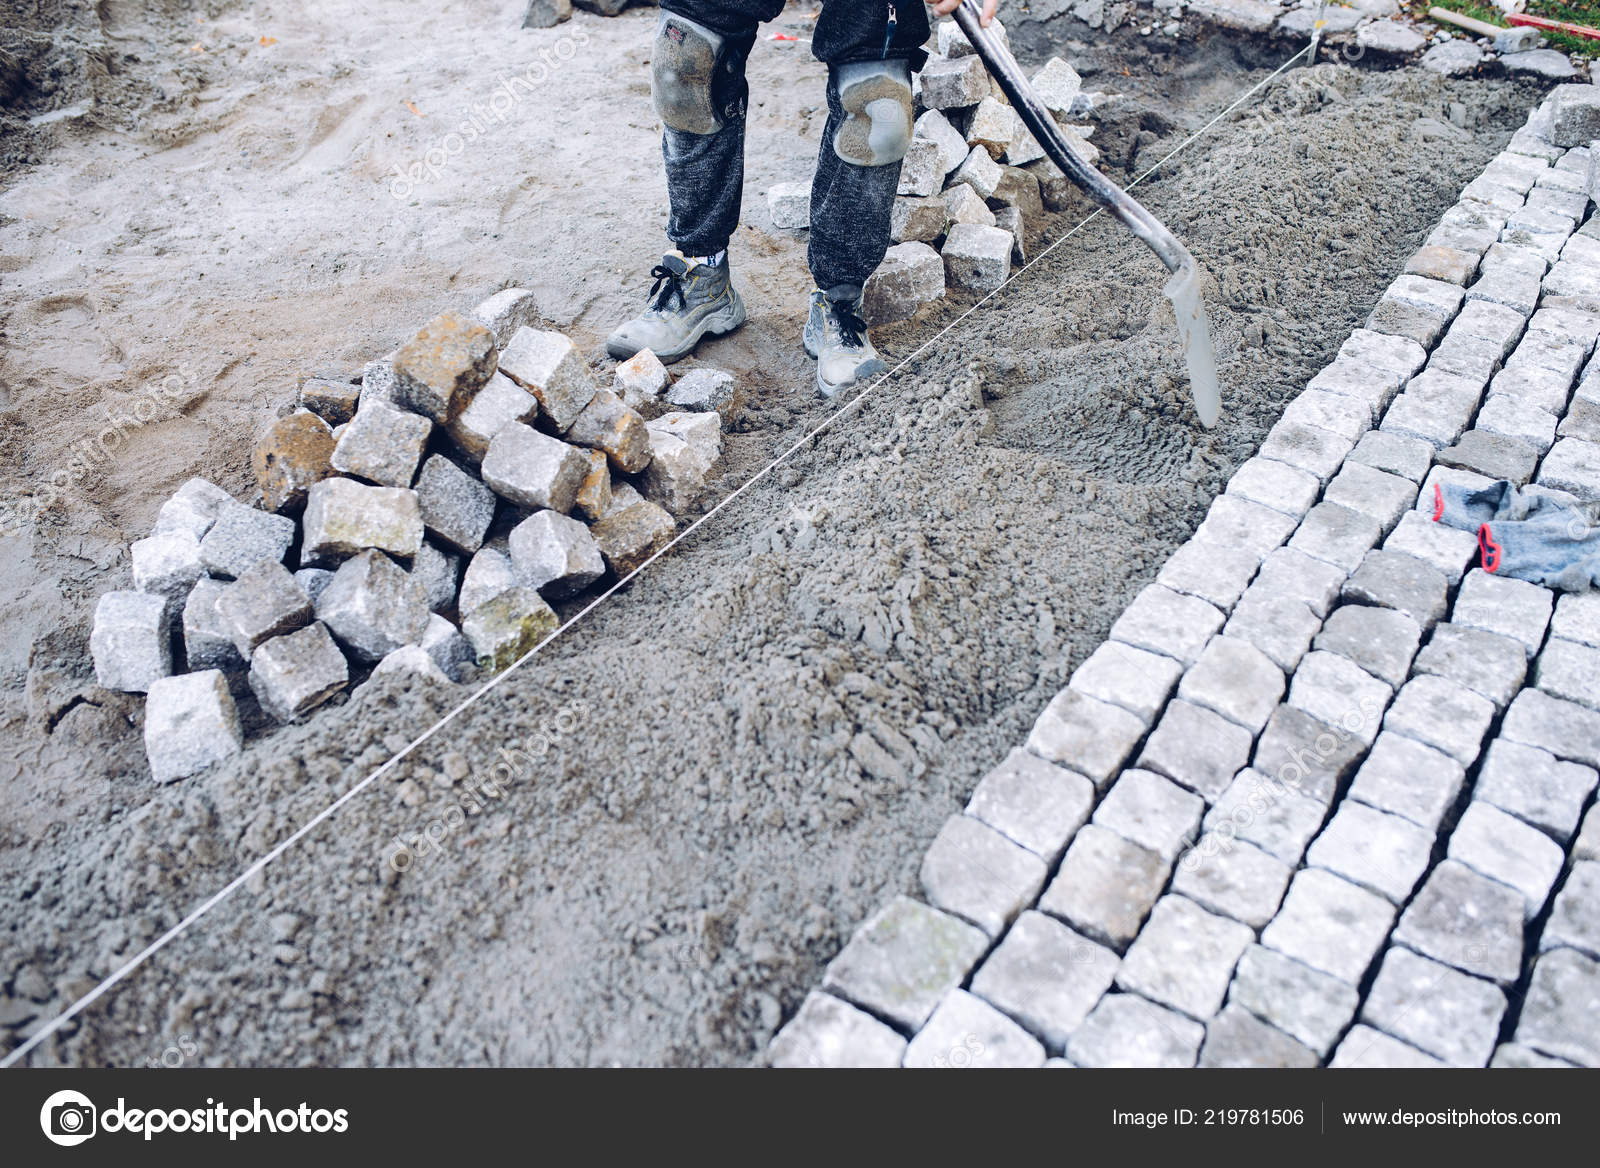 Pierre Pour Terrasse Construction Worker Placement Carrelage Pierre Pour Trottoir